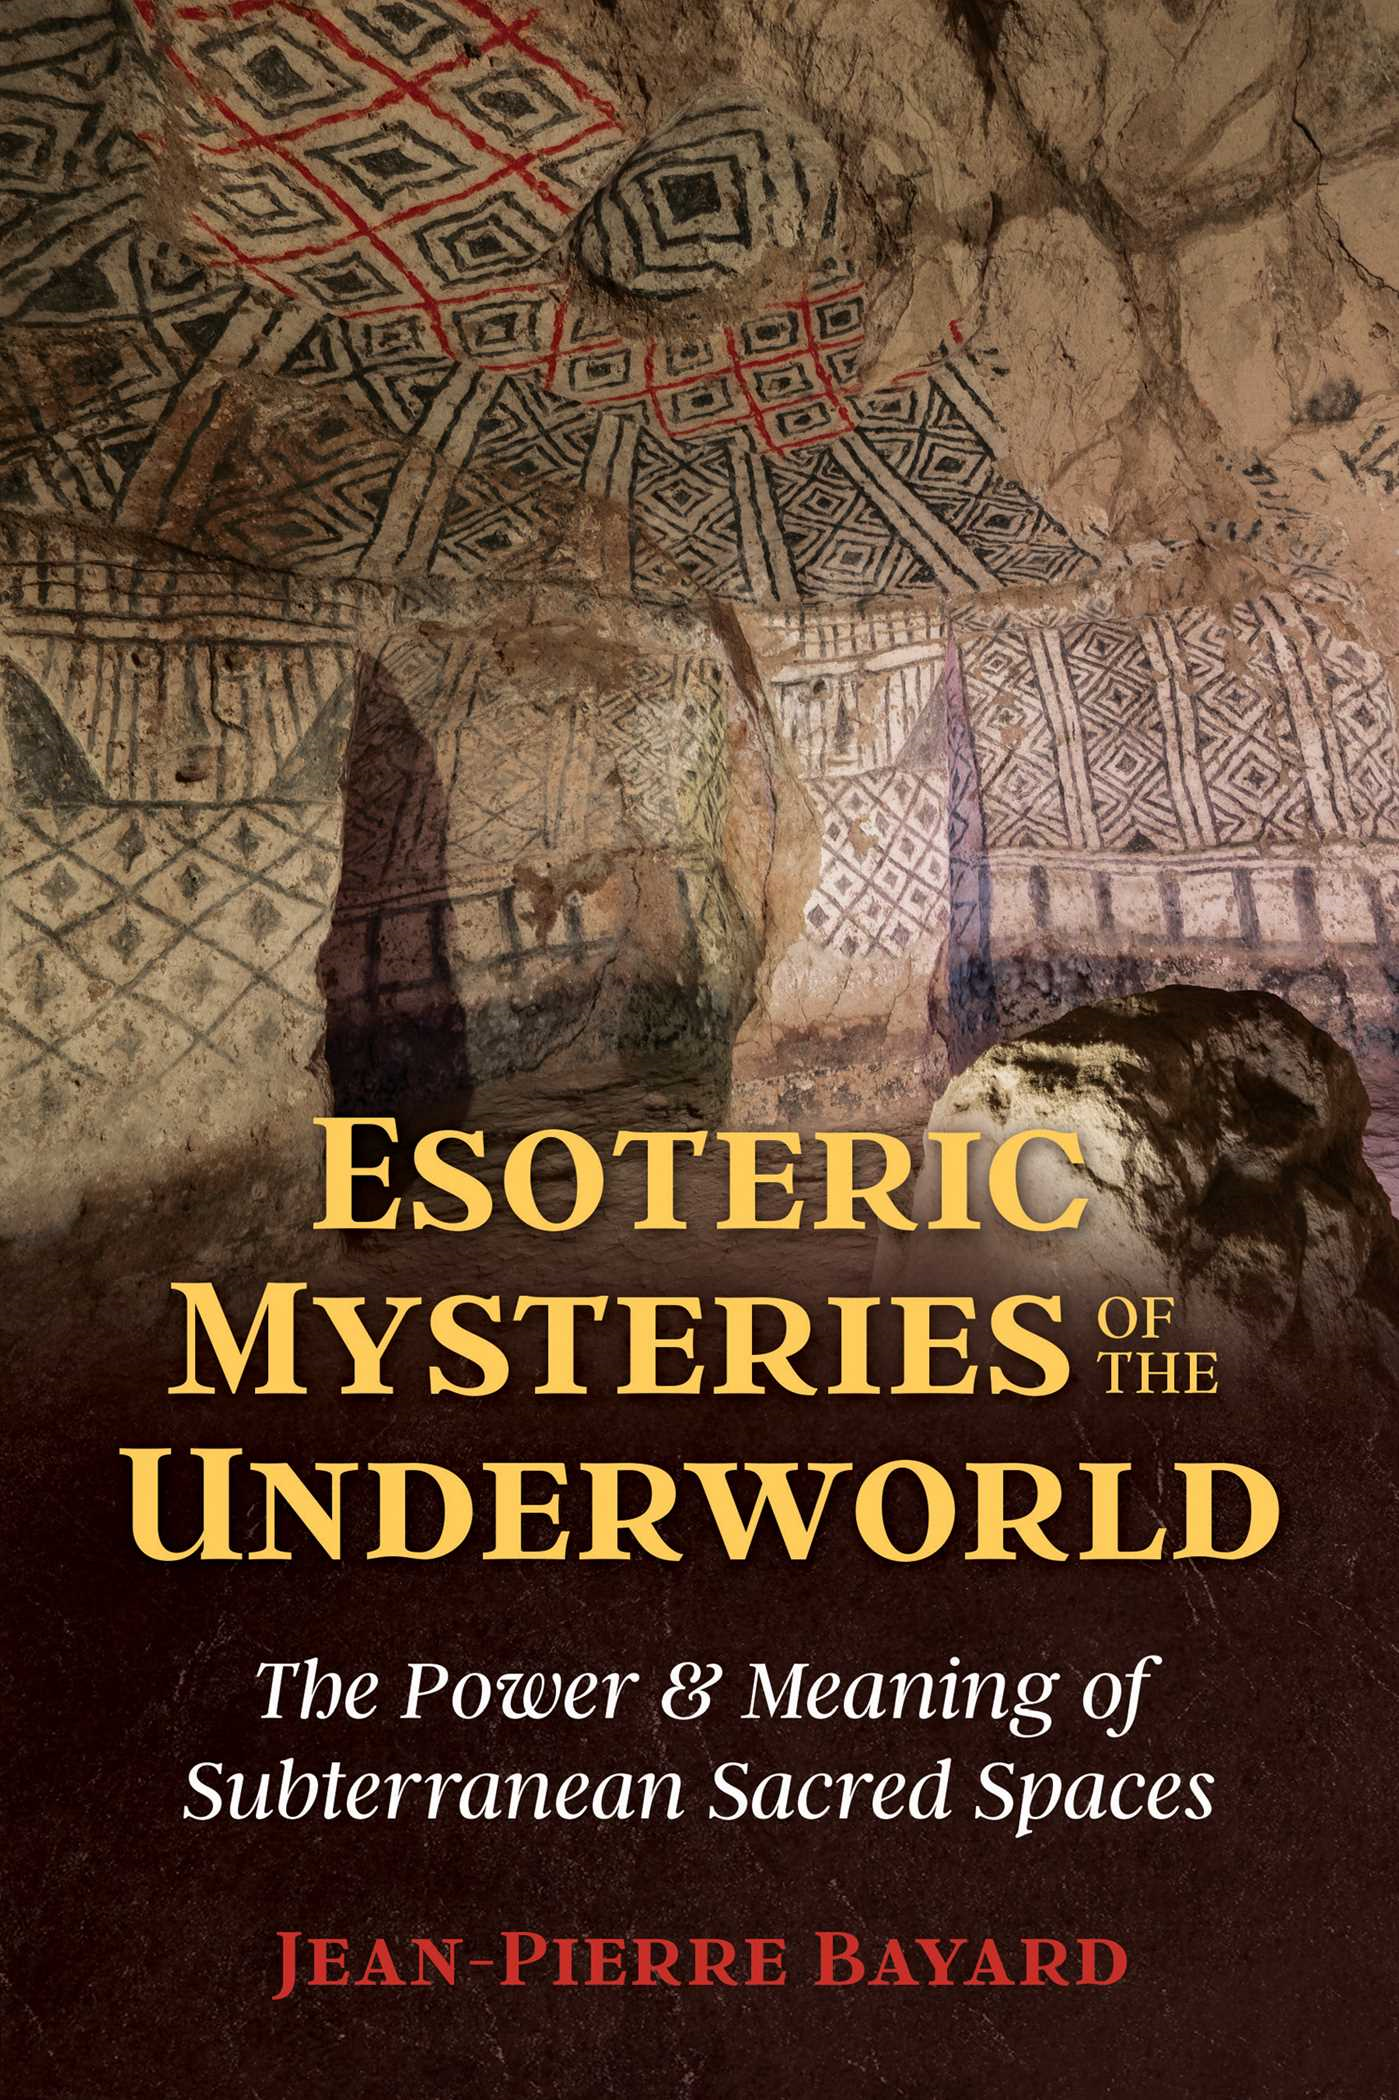 Esoteric Mysteries of the Underworld